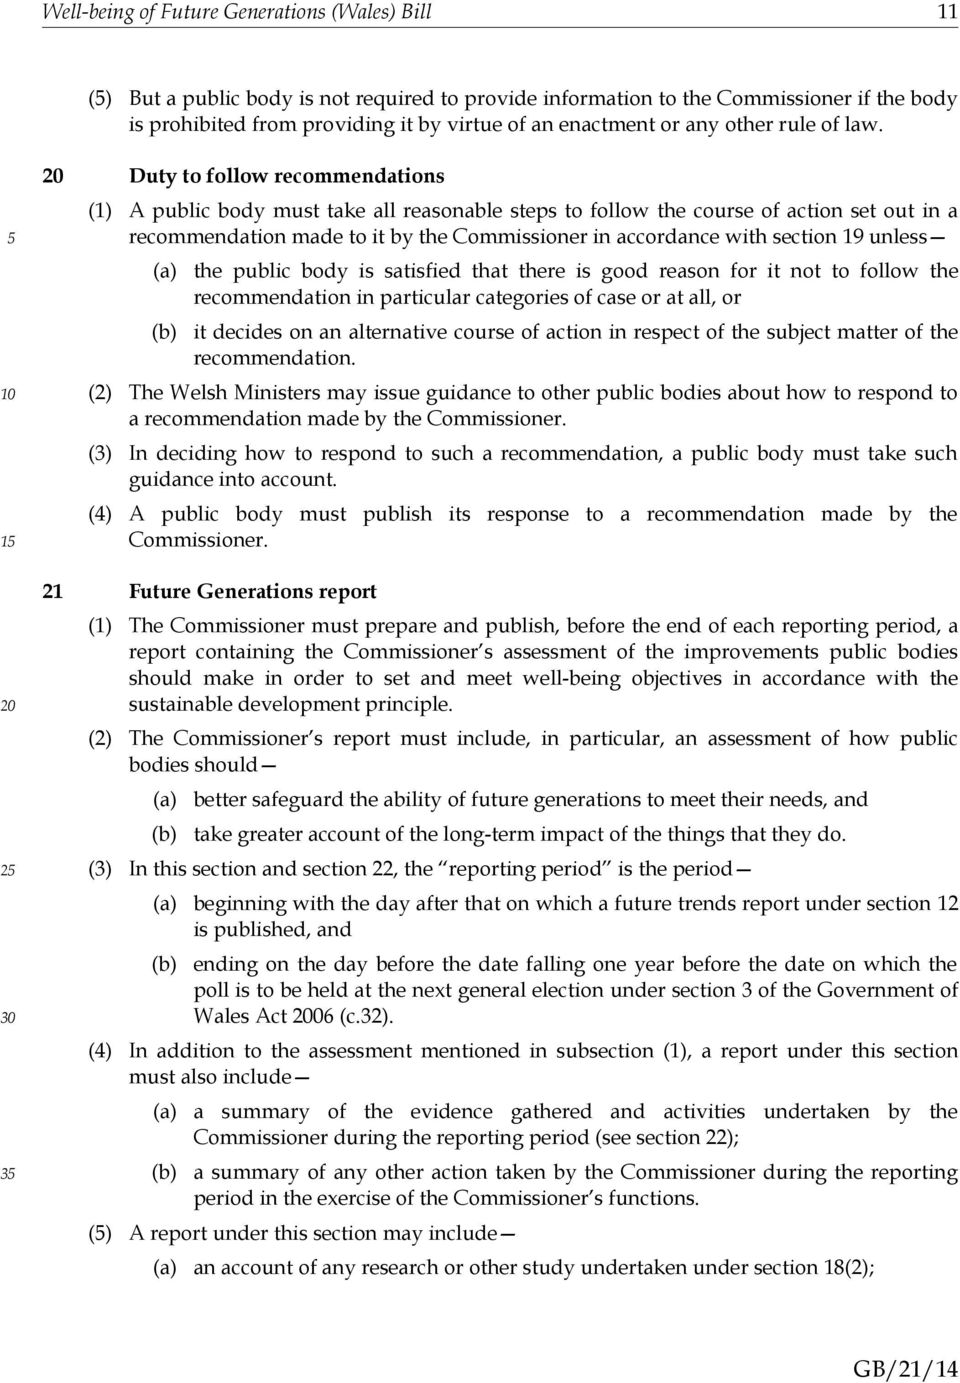 1 2 3 Duty to follow recommendations (1) A public body must take all reasonable steps to follow the course of action set out in a recommendation made to it by the Commissioner in accordance with